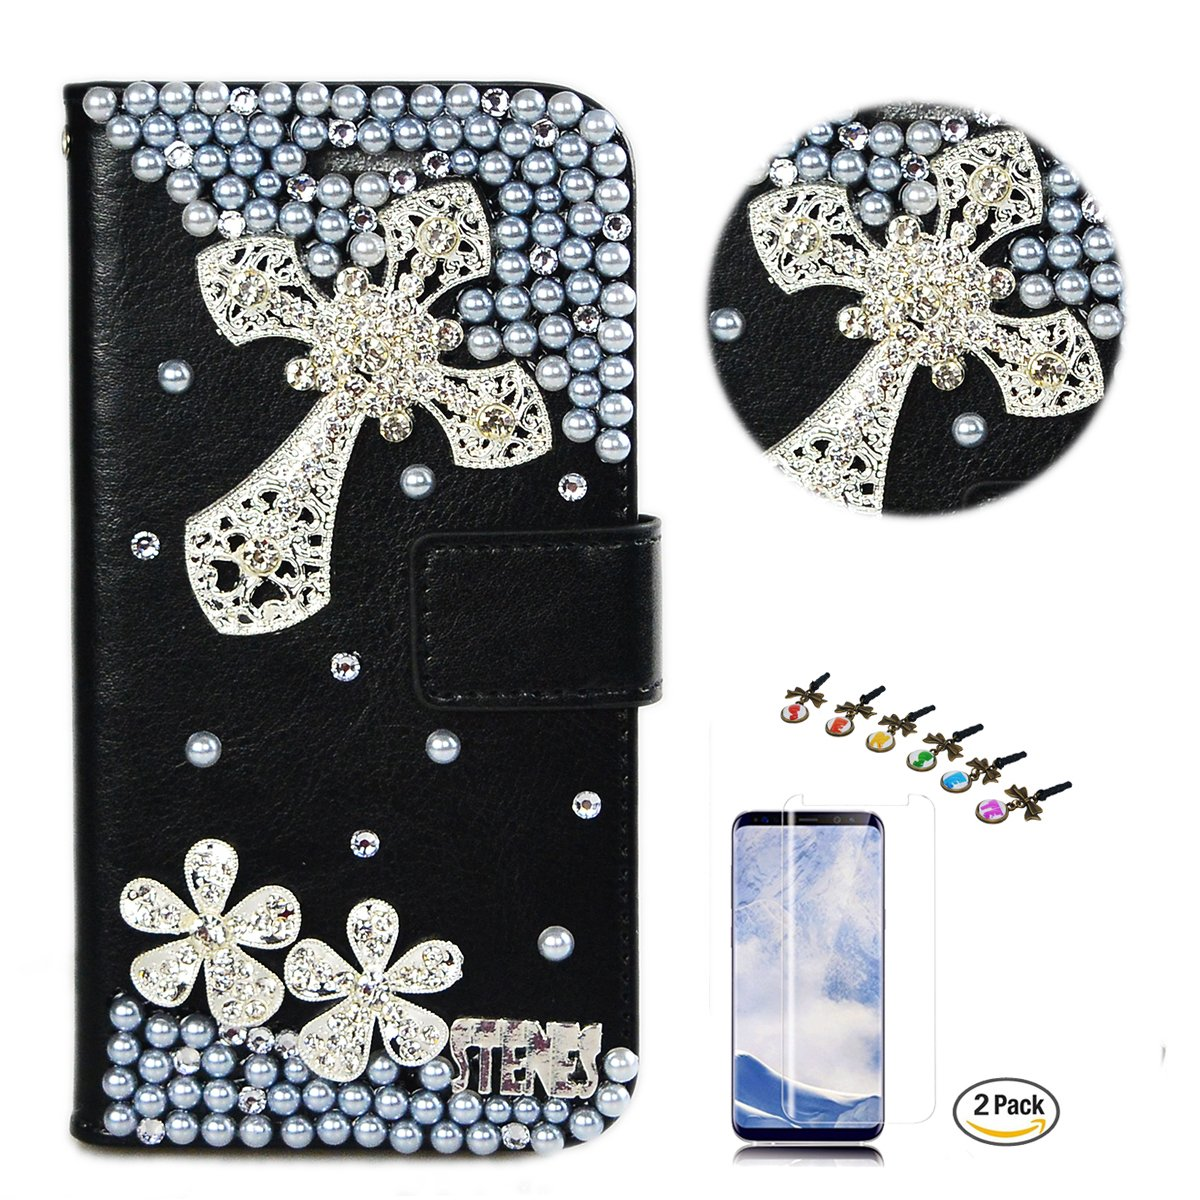 STENES LG K30 Case - Stylish - 3D Handmade Crystal Cross Flowers Design Wallet Credit Card Slots Fold Media Stand Leather Cover with Screen Protector for LG K30/LG Premier Pro 4G LTE - Silver